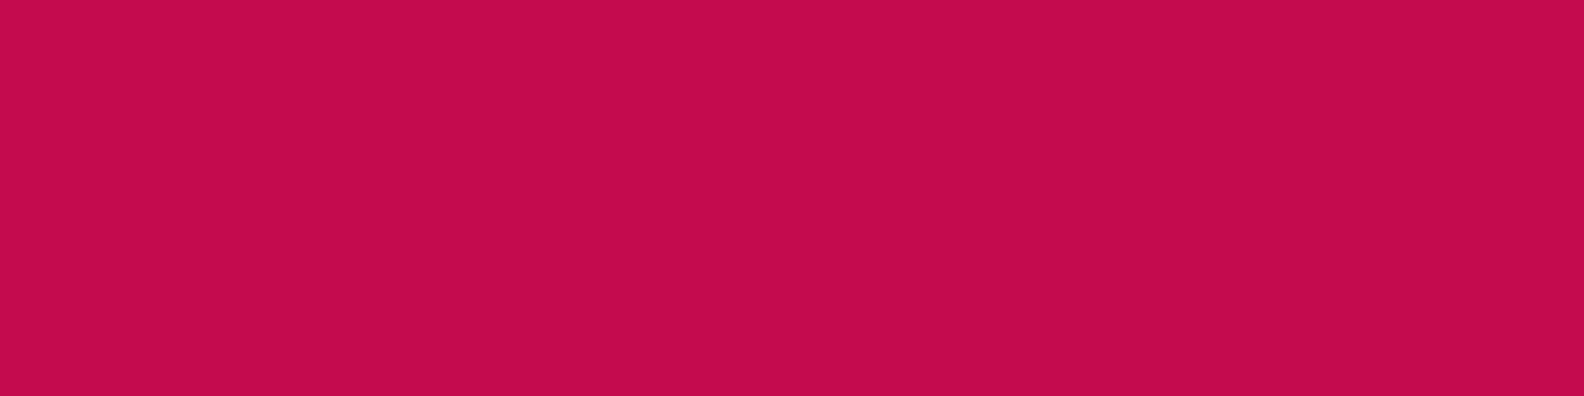 1584x396 Pictorial Carmine Solid Color Background